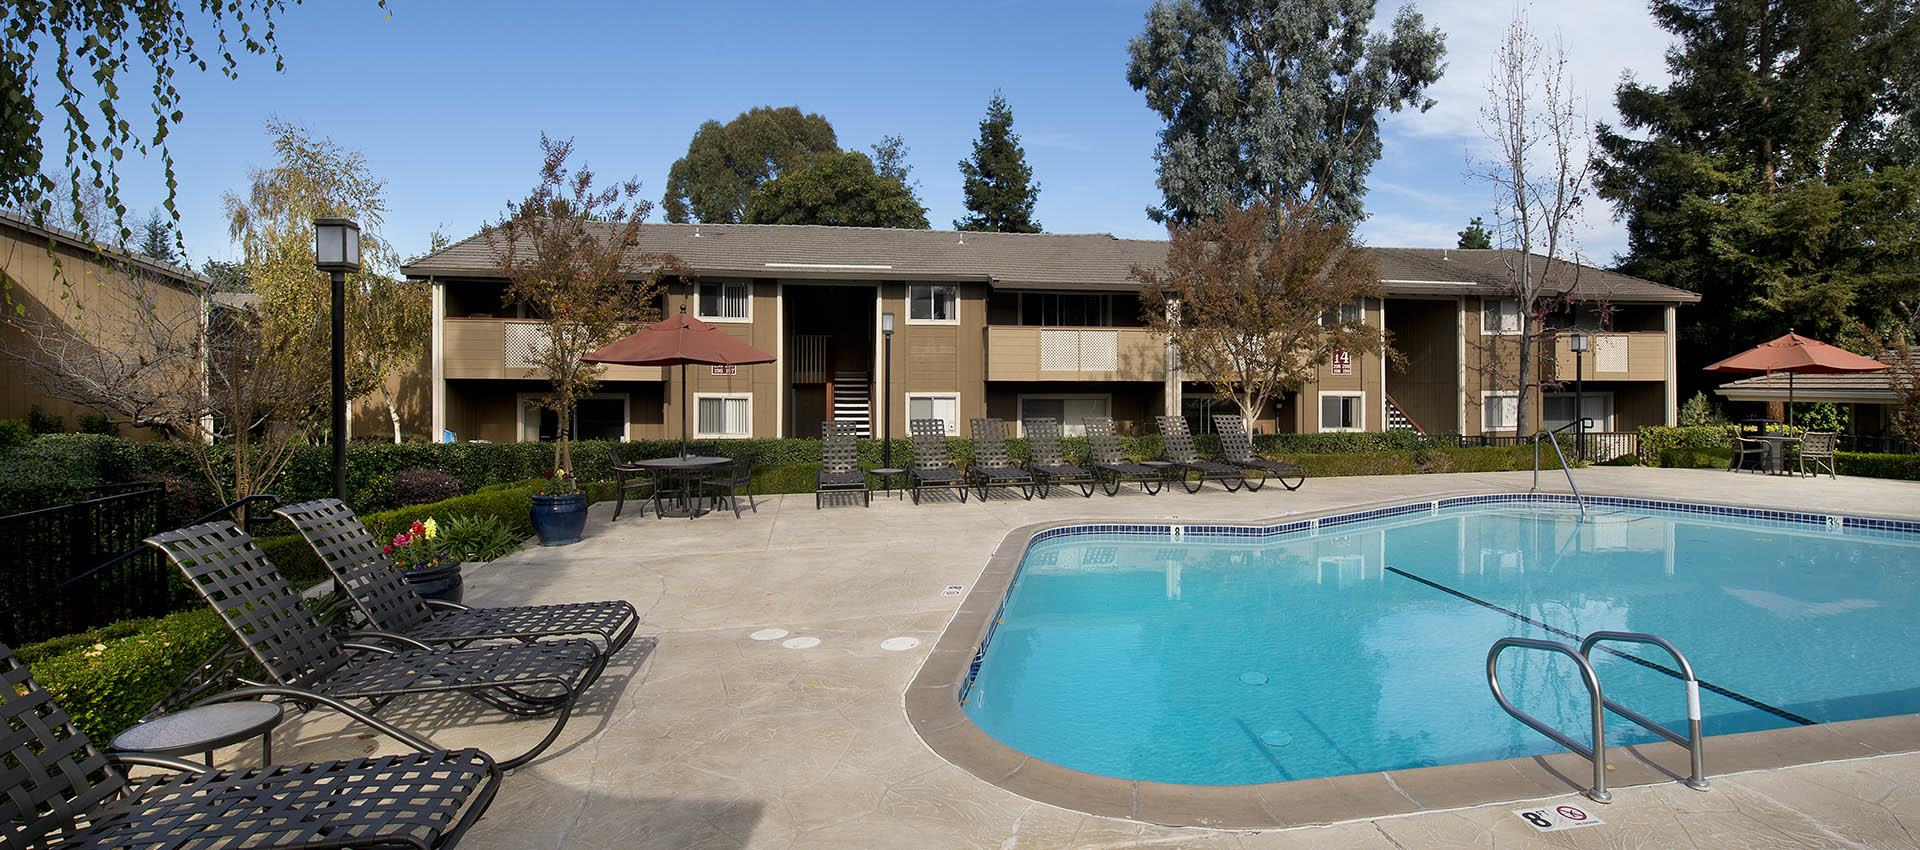 Expansive Pool Deck with WiFi at Shadow Oaks Apartment Homes in Cupertino